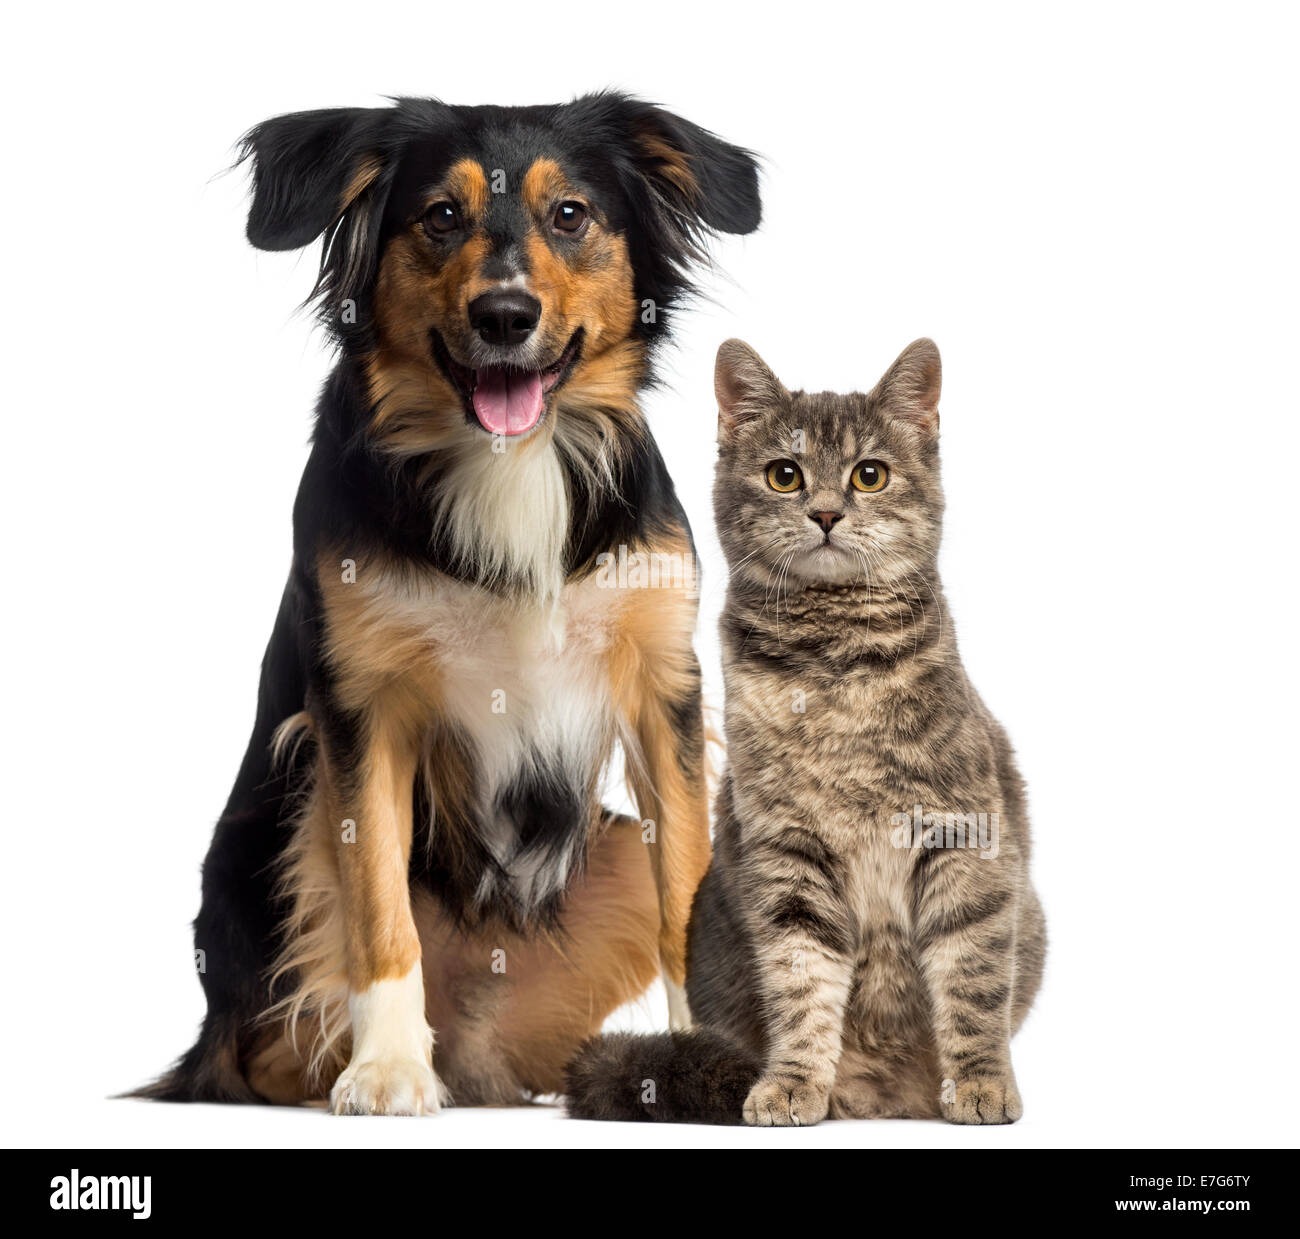 Cat and dog sitting together against white background - Stock Image